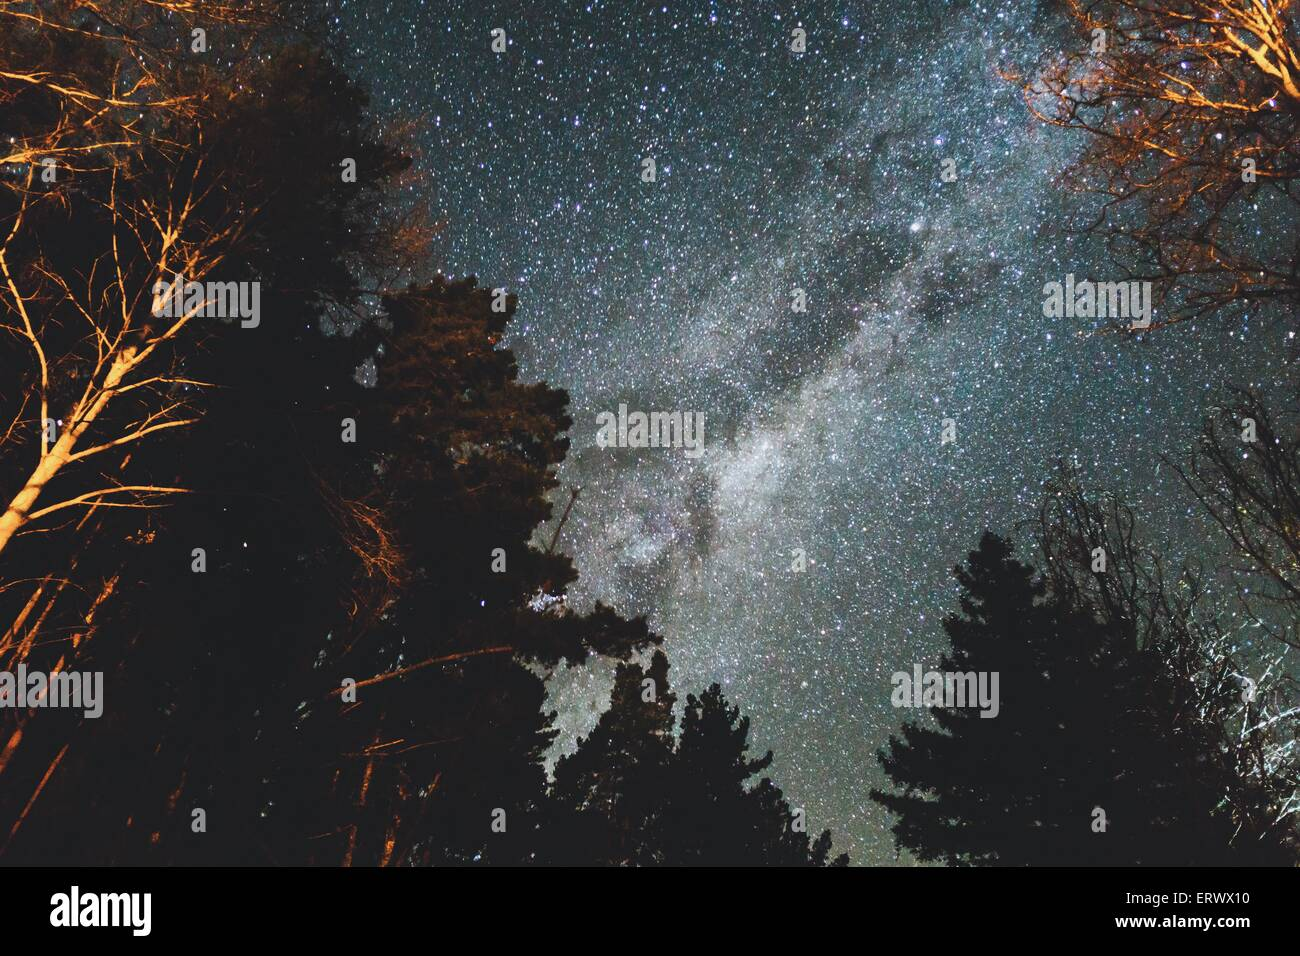 Beautiful clear night showing the milky way above the trees from the Mt Franklin camp site near Daylesford. - Stock Image